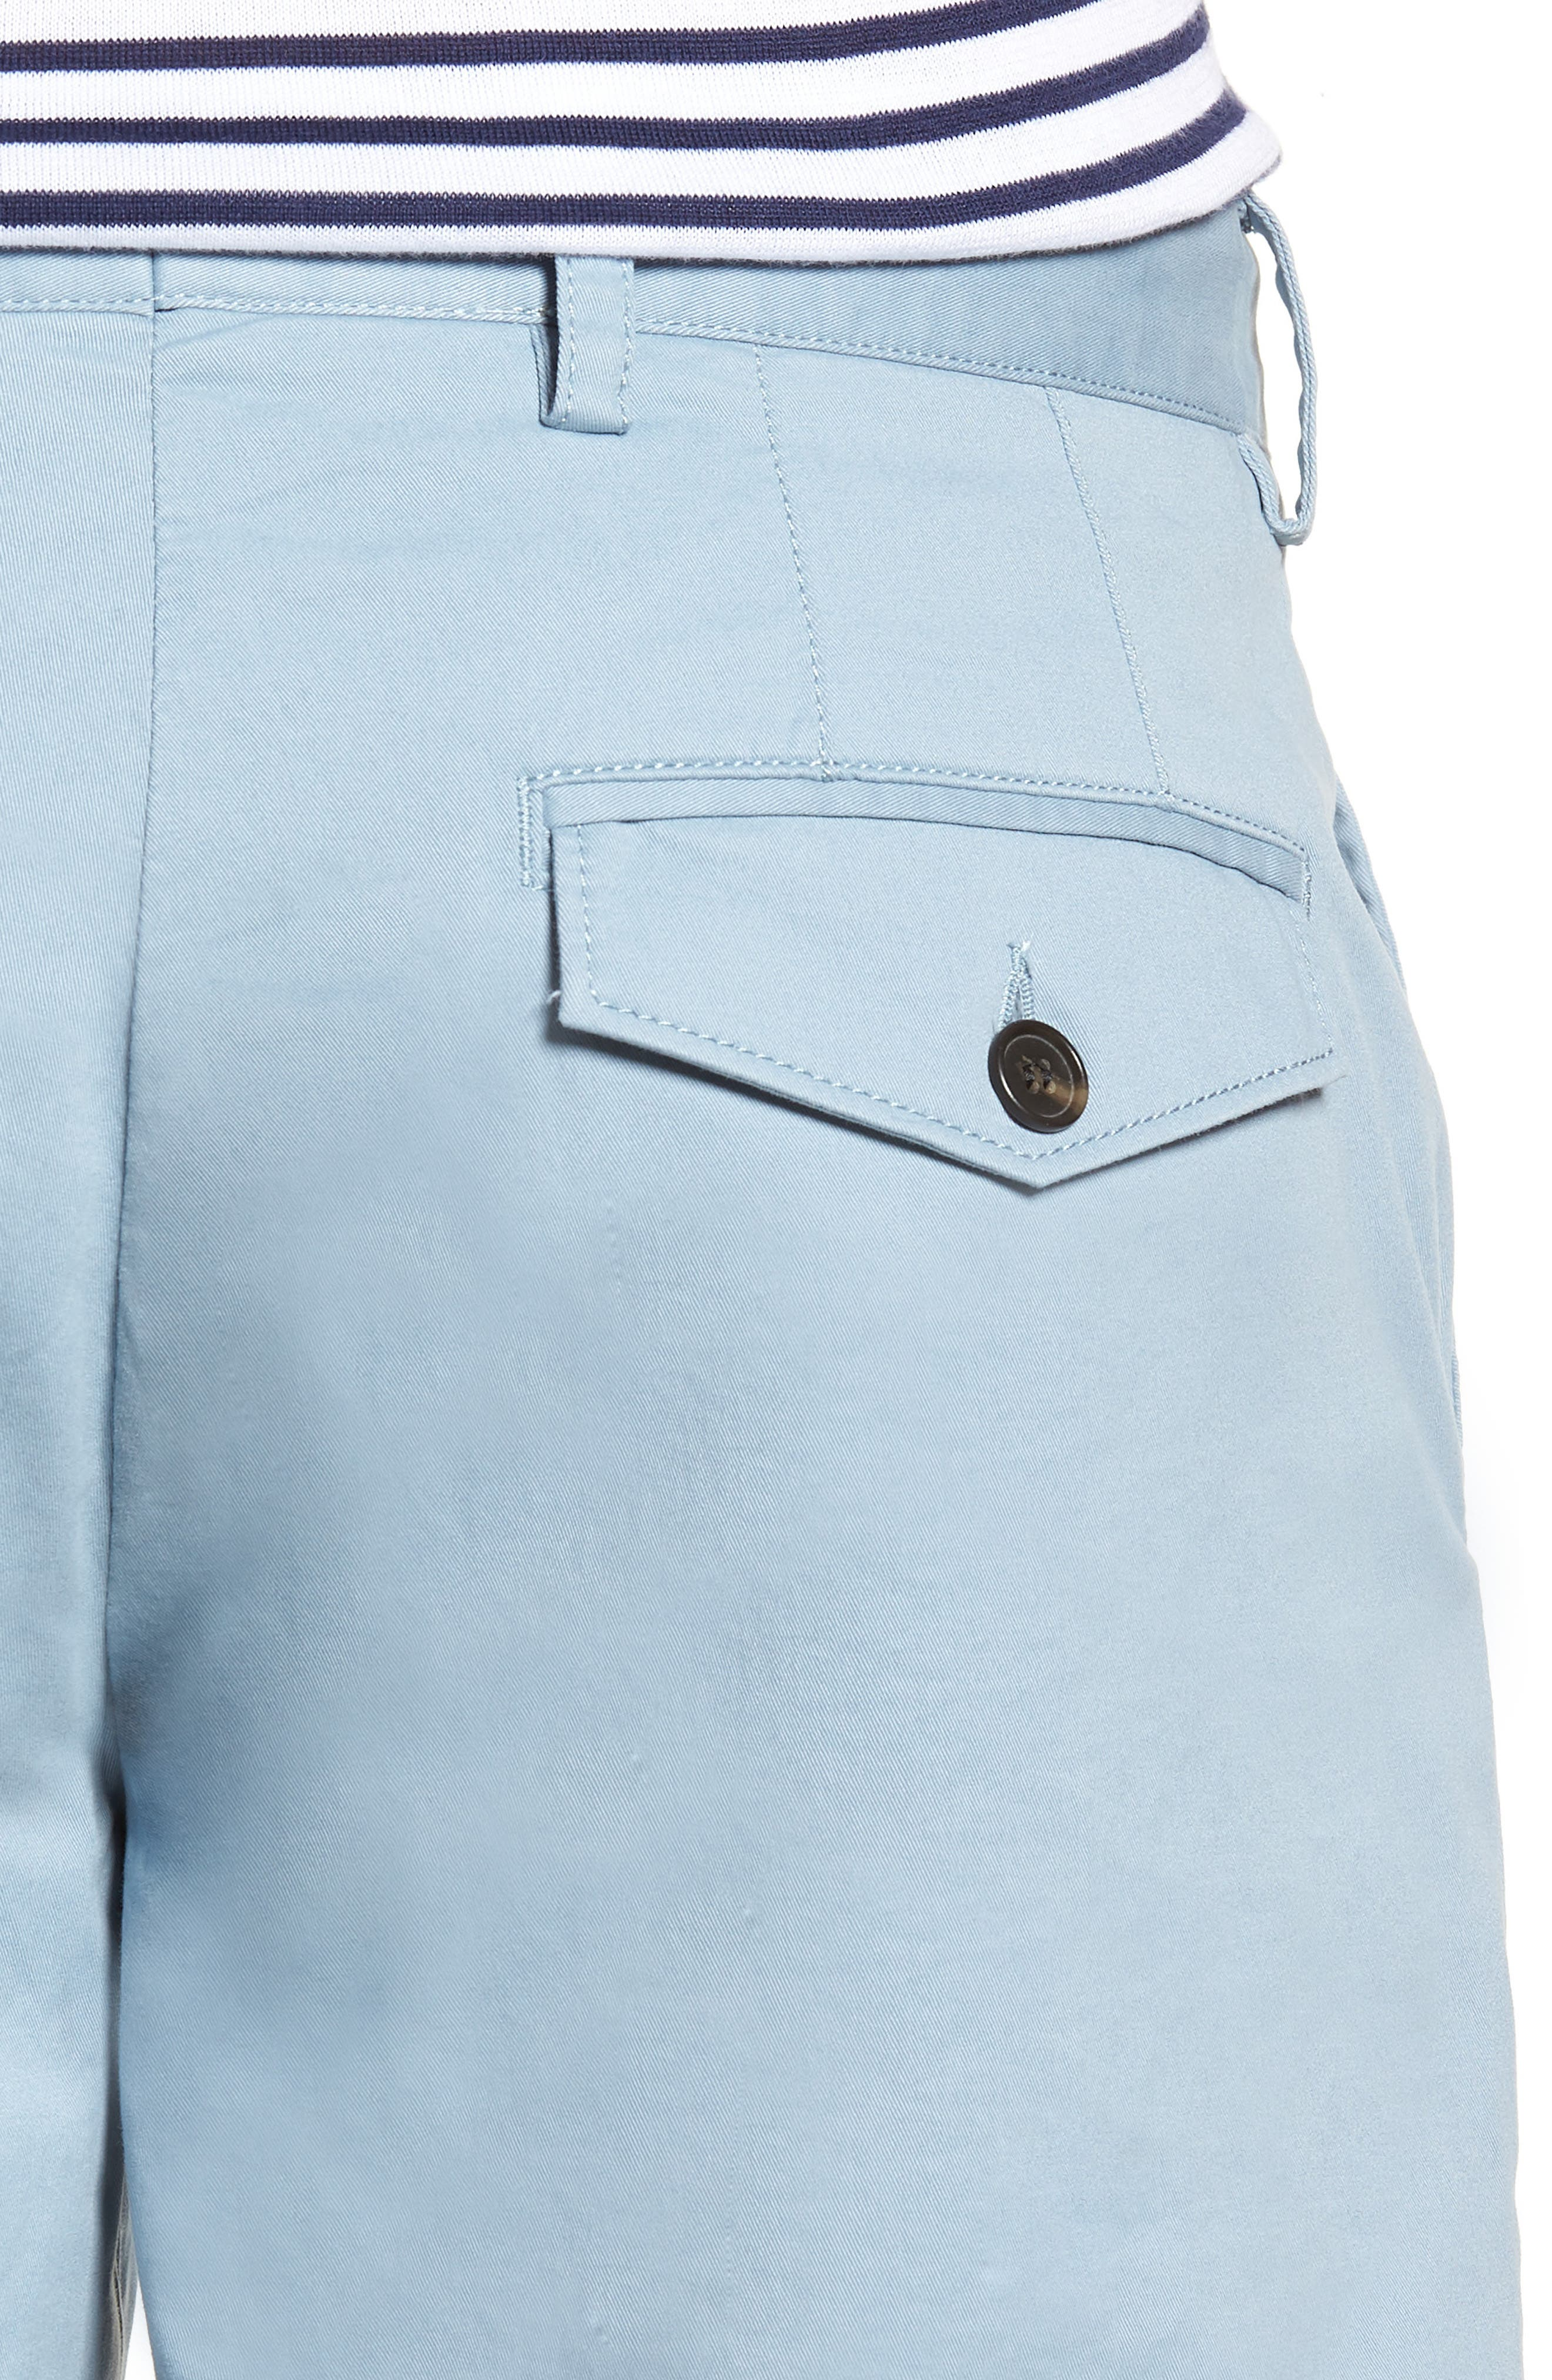 Machine Gun Stretch Cotton Shorts,                             Alternate thumbnail 4, color,                             Ashley Blue